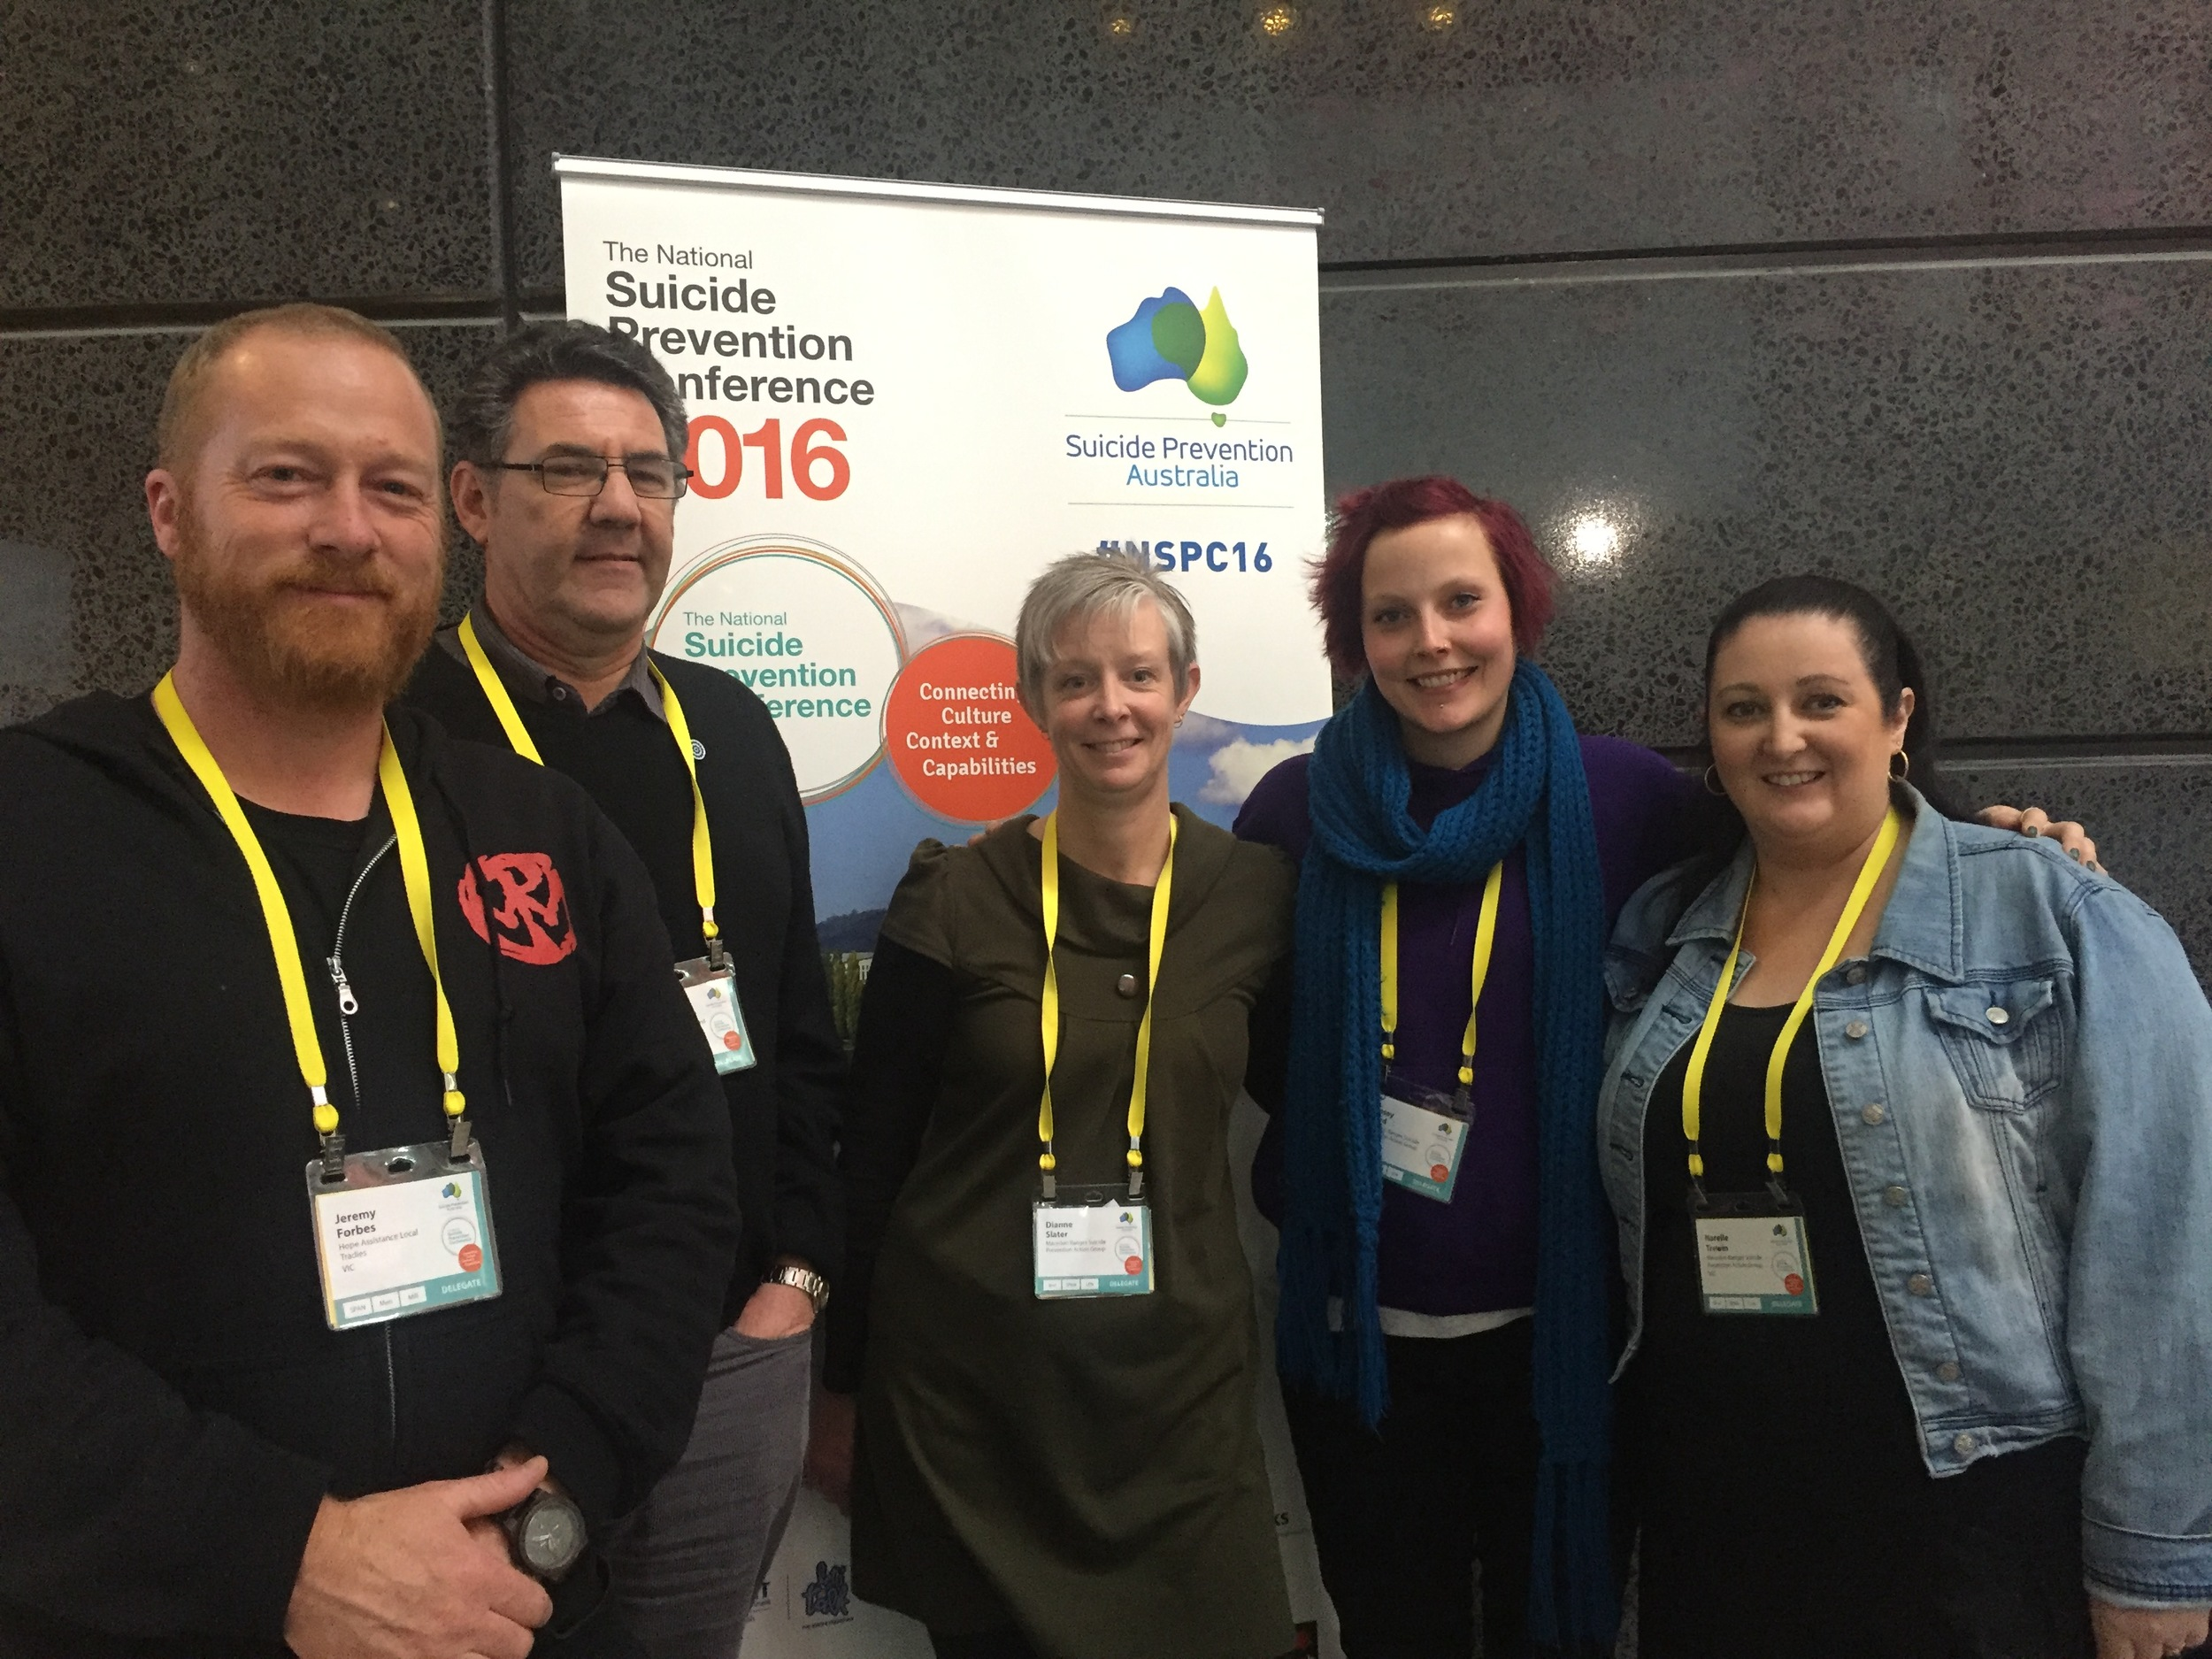 National Suicide Prevention Australia Conference participants and MRSPAG members, Jeremy Forbes, Leo Schultz, Di Slater, Lynsey Ward and Narelle Trewin, spent 4 days learning about new programs, ideas, research and building more networks for the Macedon Ranges. We thank them for committing their time, we look forward to hearing more in the coming weeks. Stay tuned!